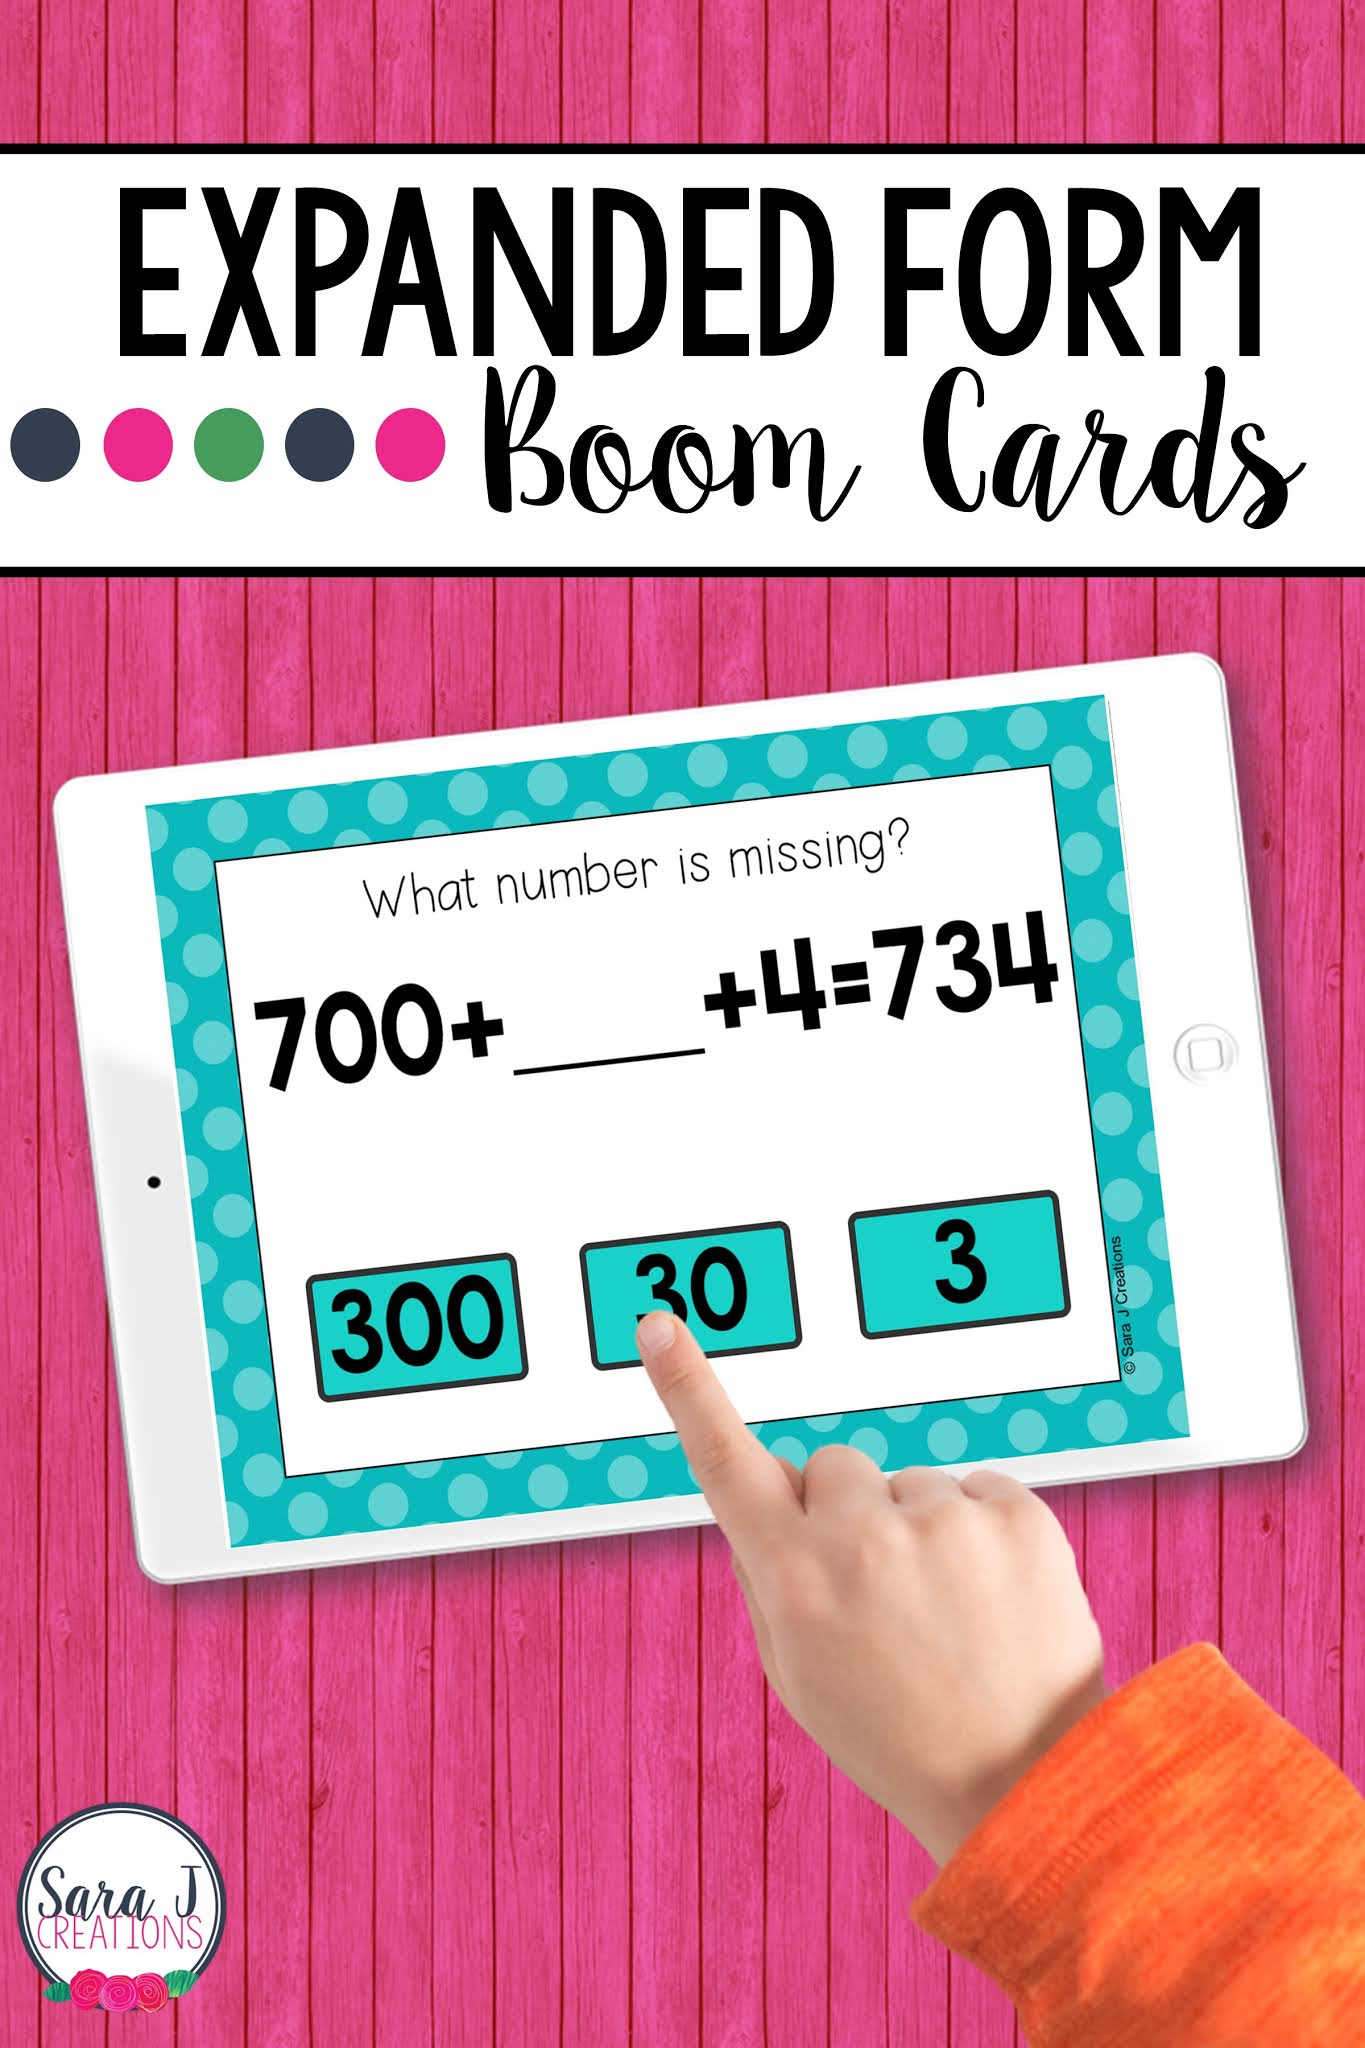 Make digital learning fun with these engaging, no prep Expanded Form Boom Cards. These digital task cards are perfect for remote learning but can also be used in a traditional classroom on devices such as ipads, tables, Chromebooks, smartboards, and more. Designed for 2nd grade, these place value task cards include numbers up to 1,000.